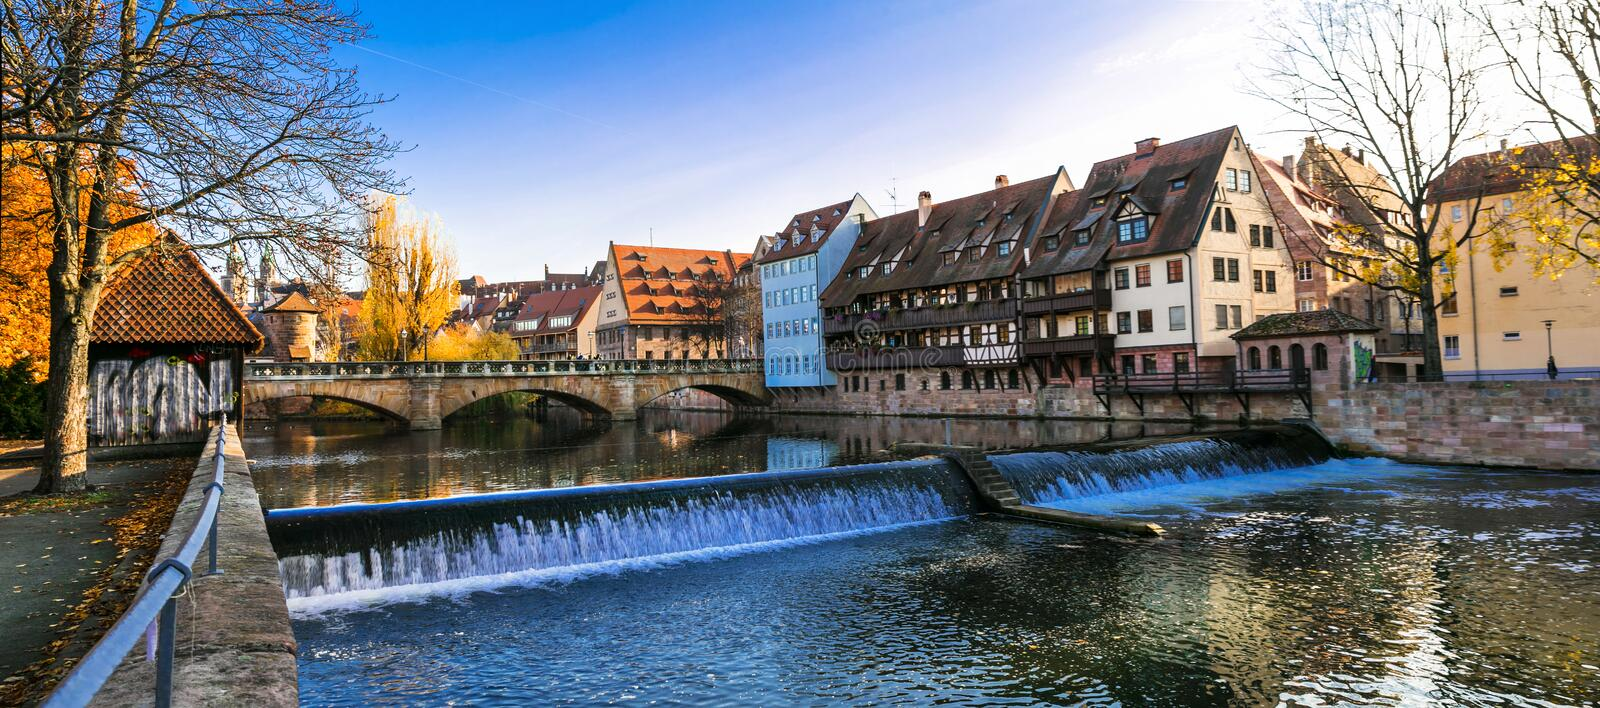 Nurnberg old town in autumn colors. Landmarks of Germany series. stock photos